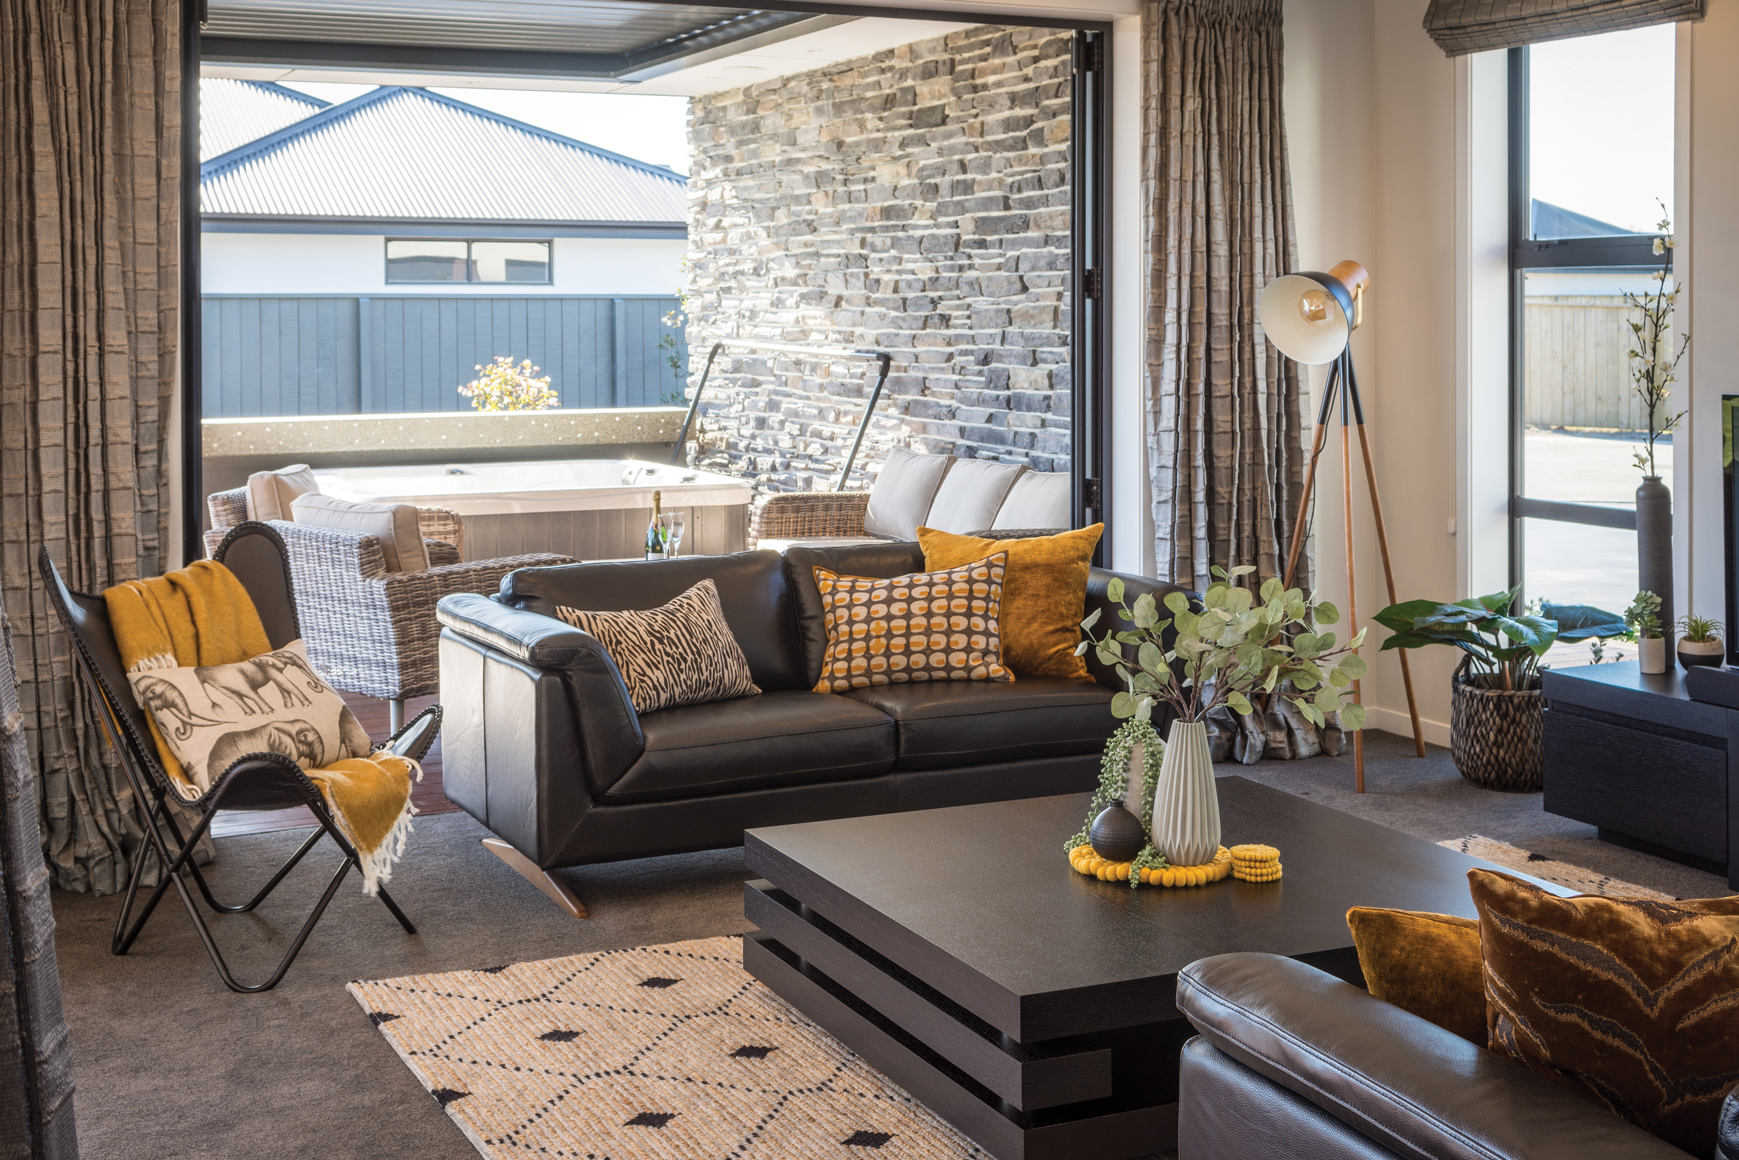 OUTDOOR LIVING:  Lay-back bifold doors create an easy flow from the living area to the spa and casual seating area, protected from the elements by the Stratco Allure Louvre system.